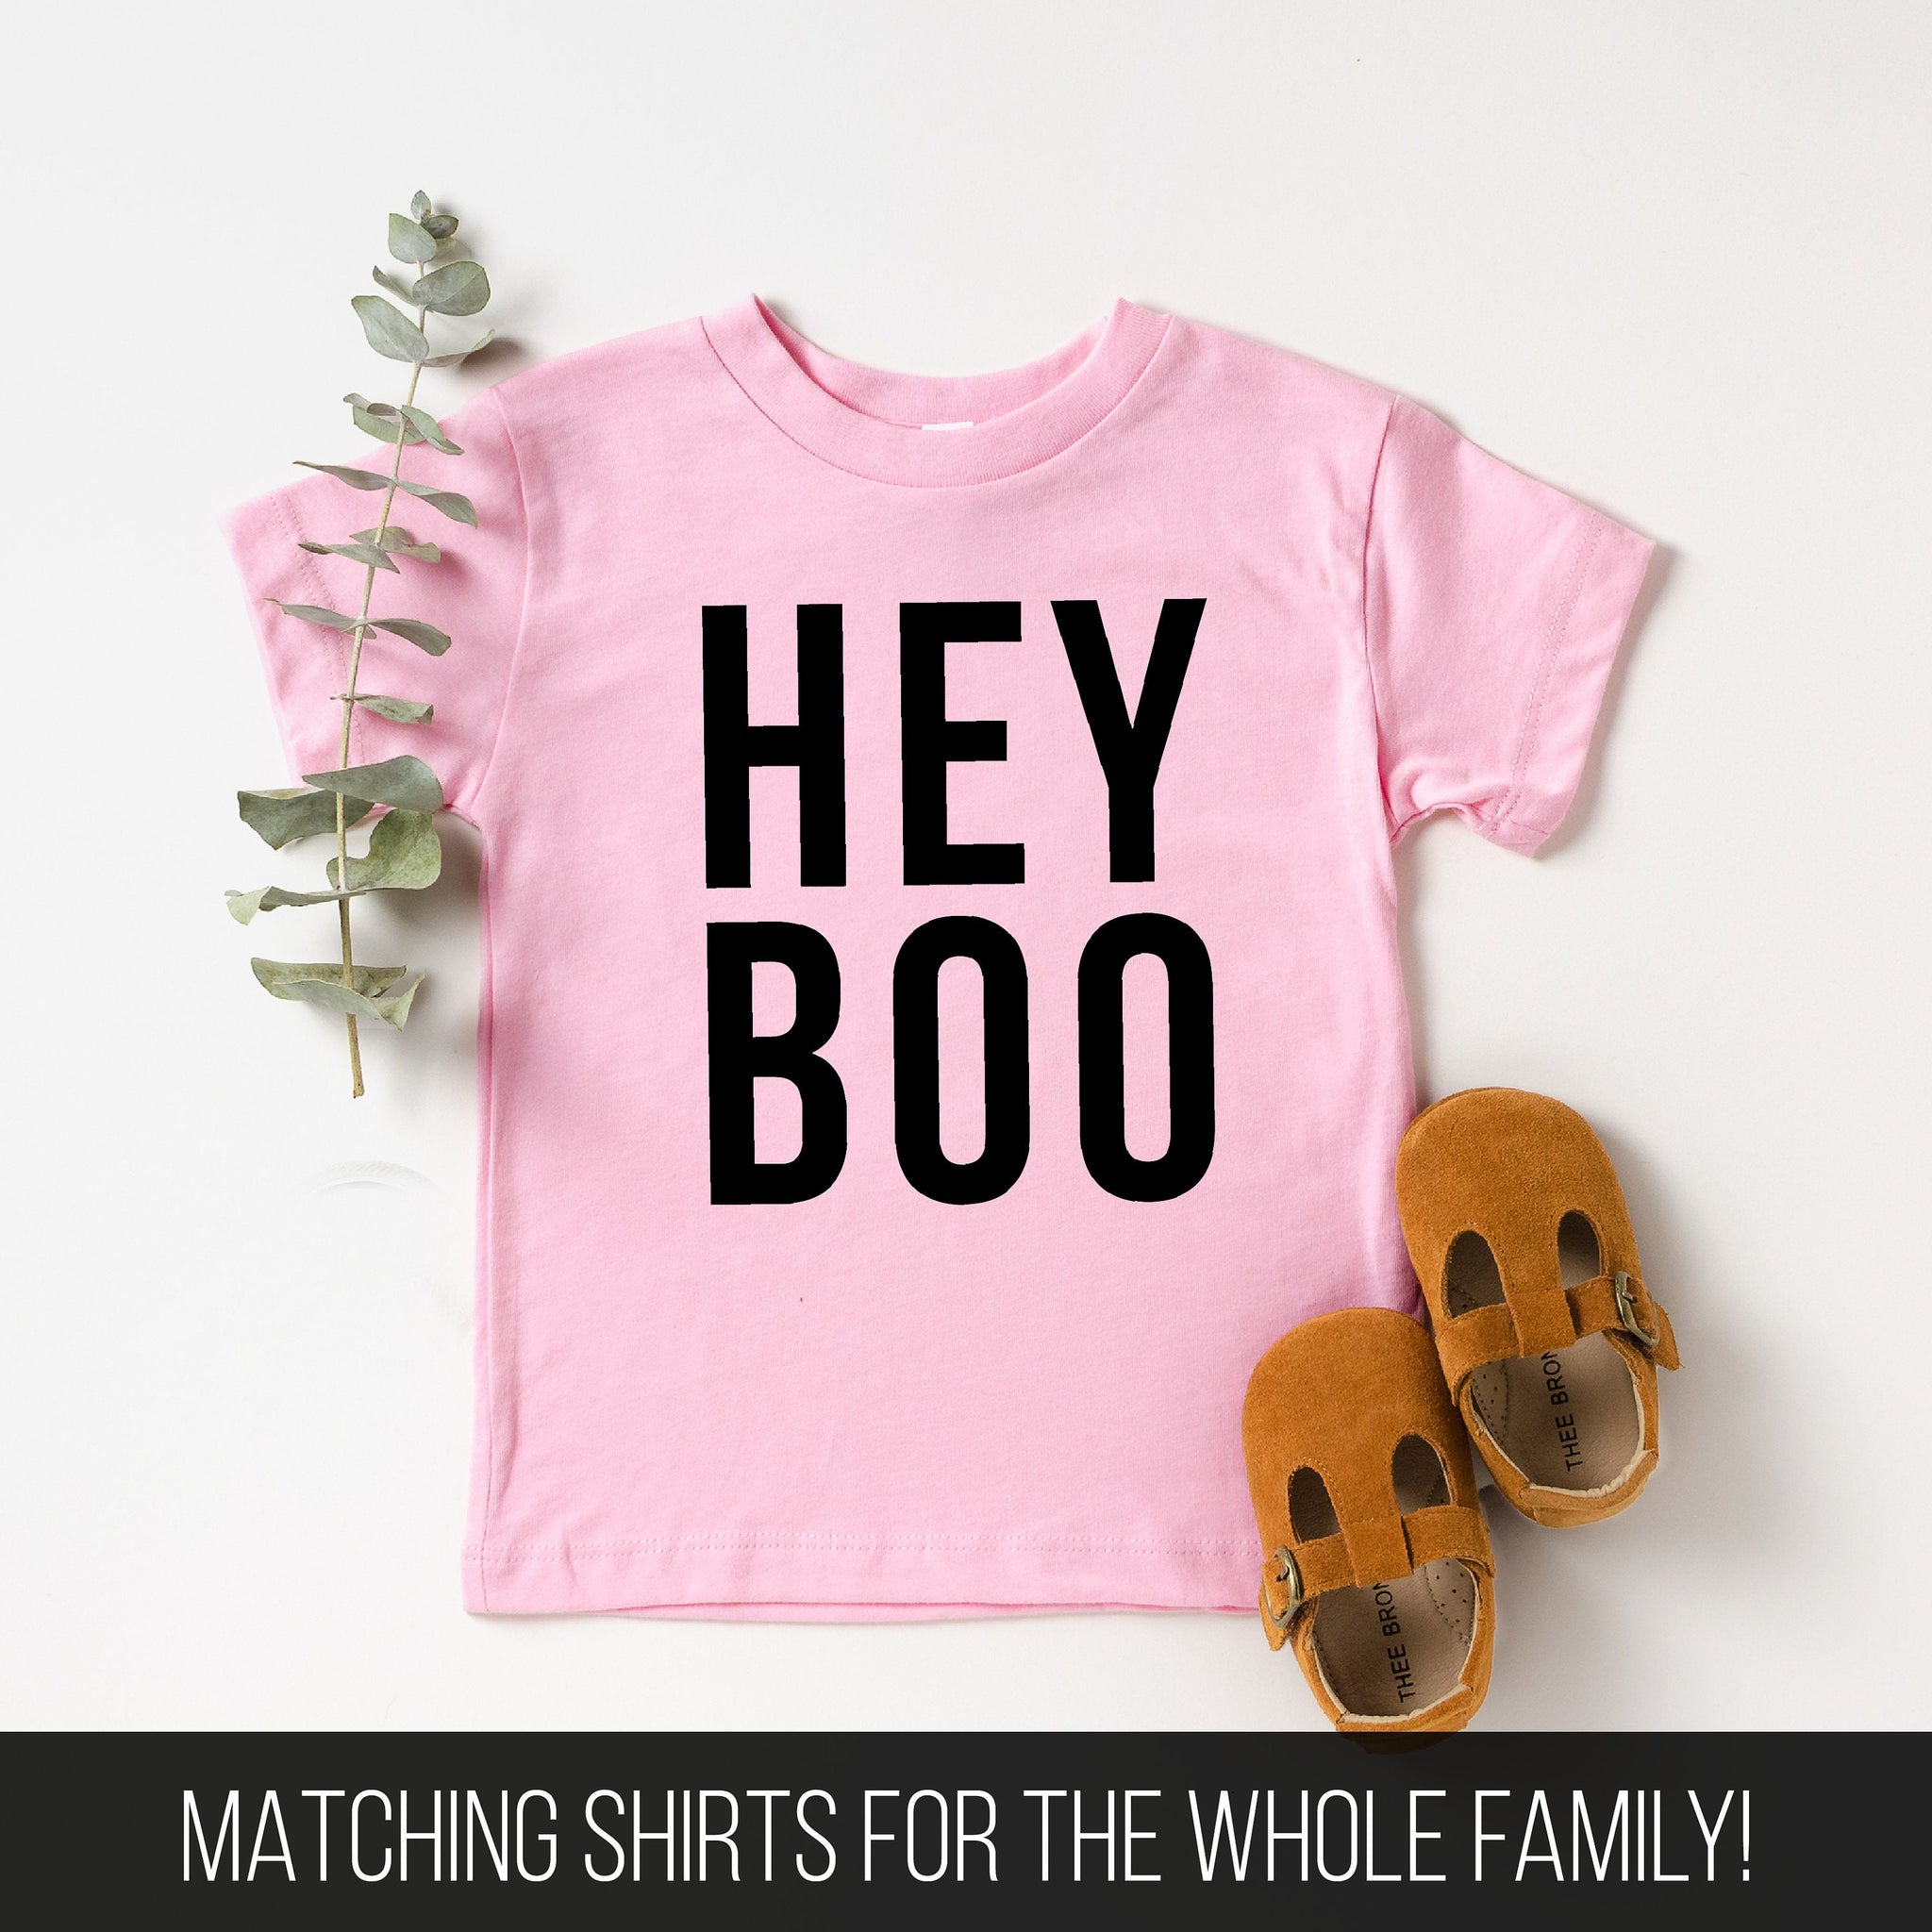 Hey Boo Toddler T-Shirt (Black Text)